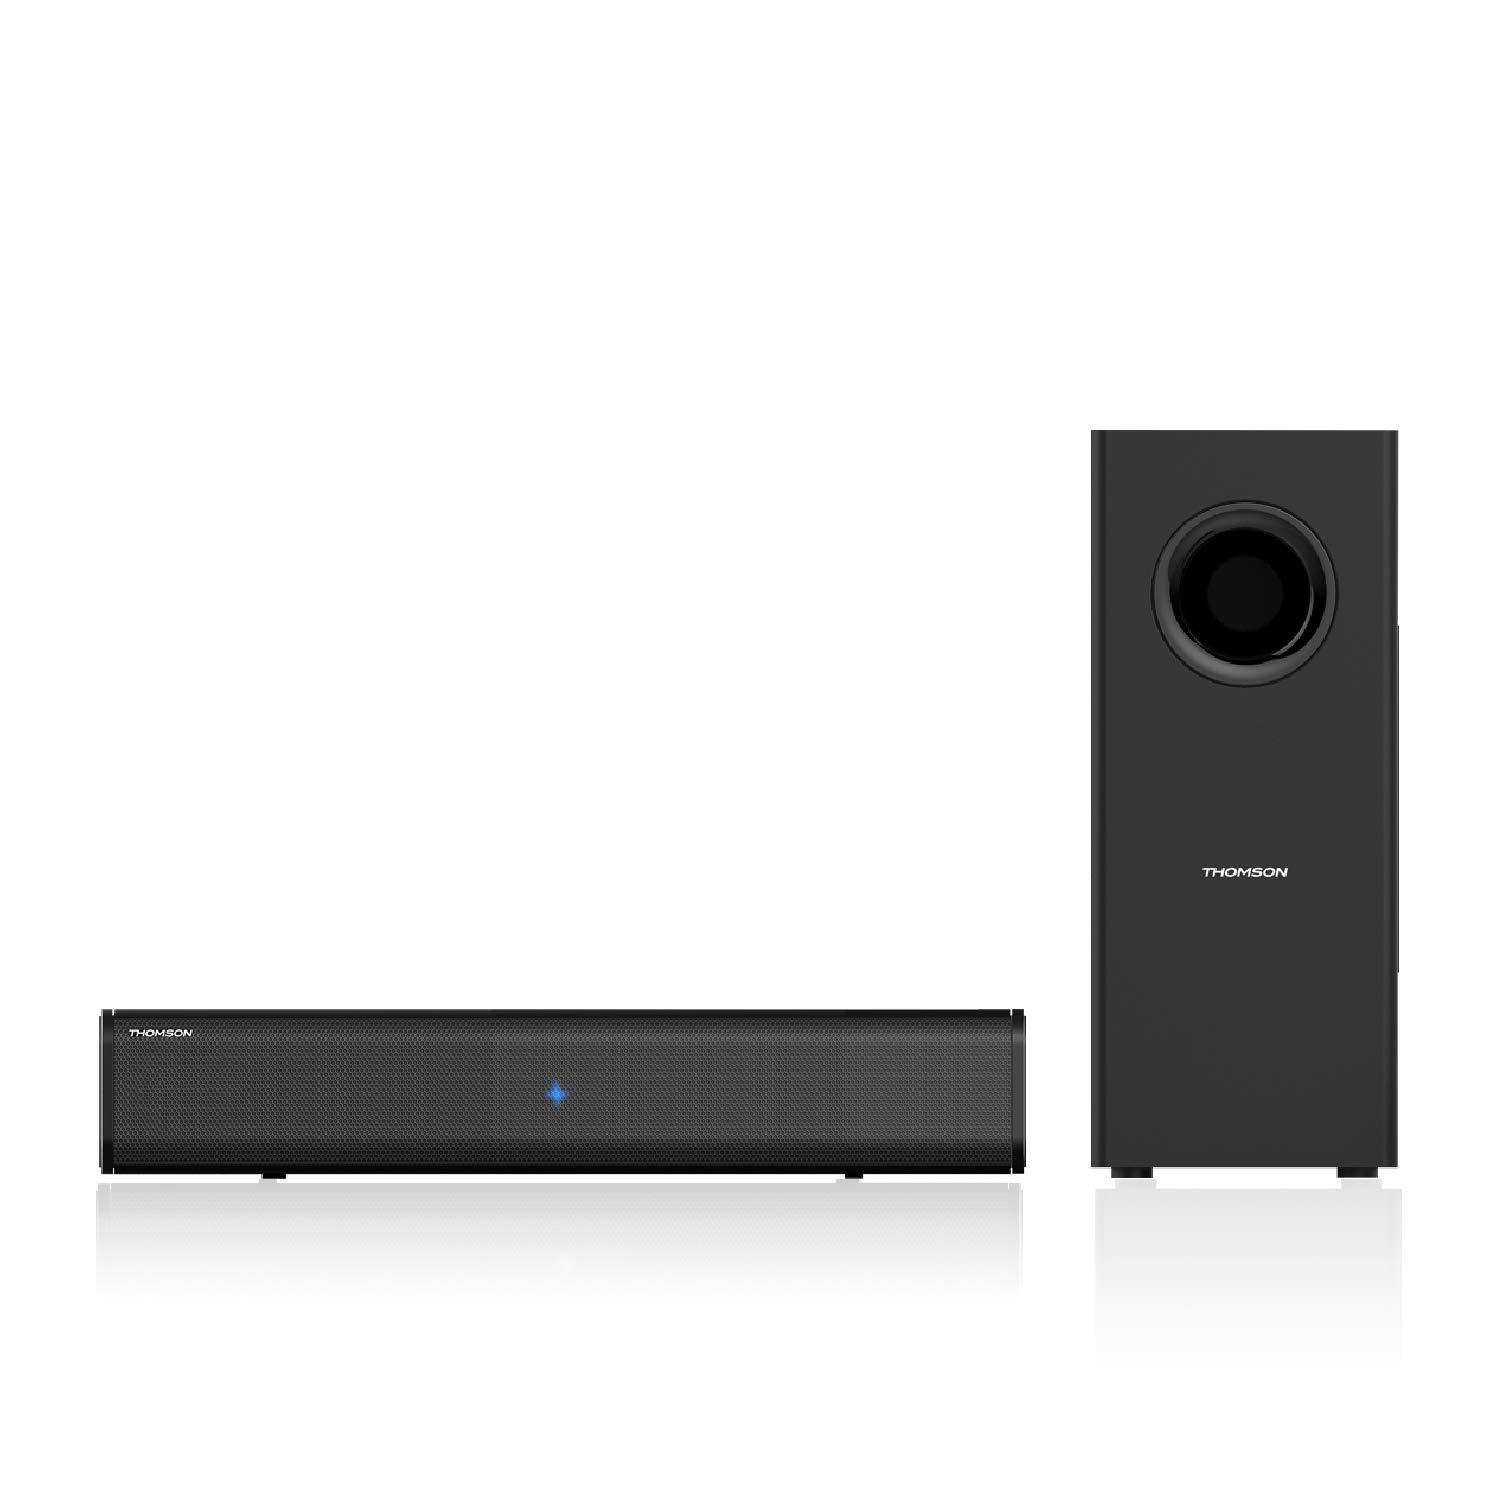 Thomson SBW10 80 Watts Wired Soundbar With Subwoofer And Bluetooth